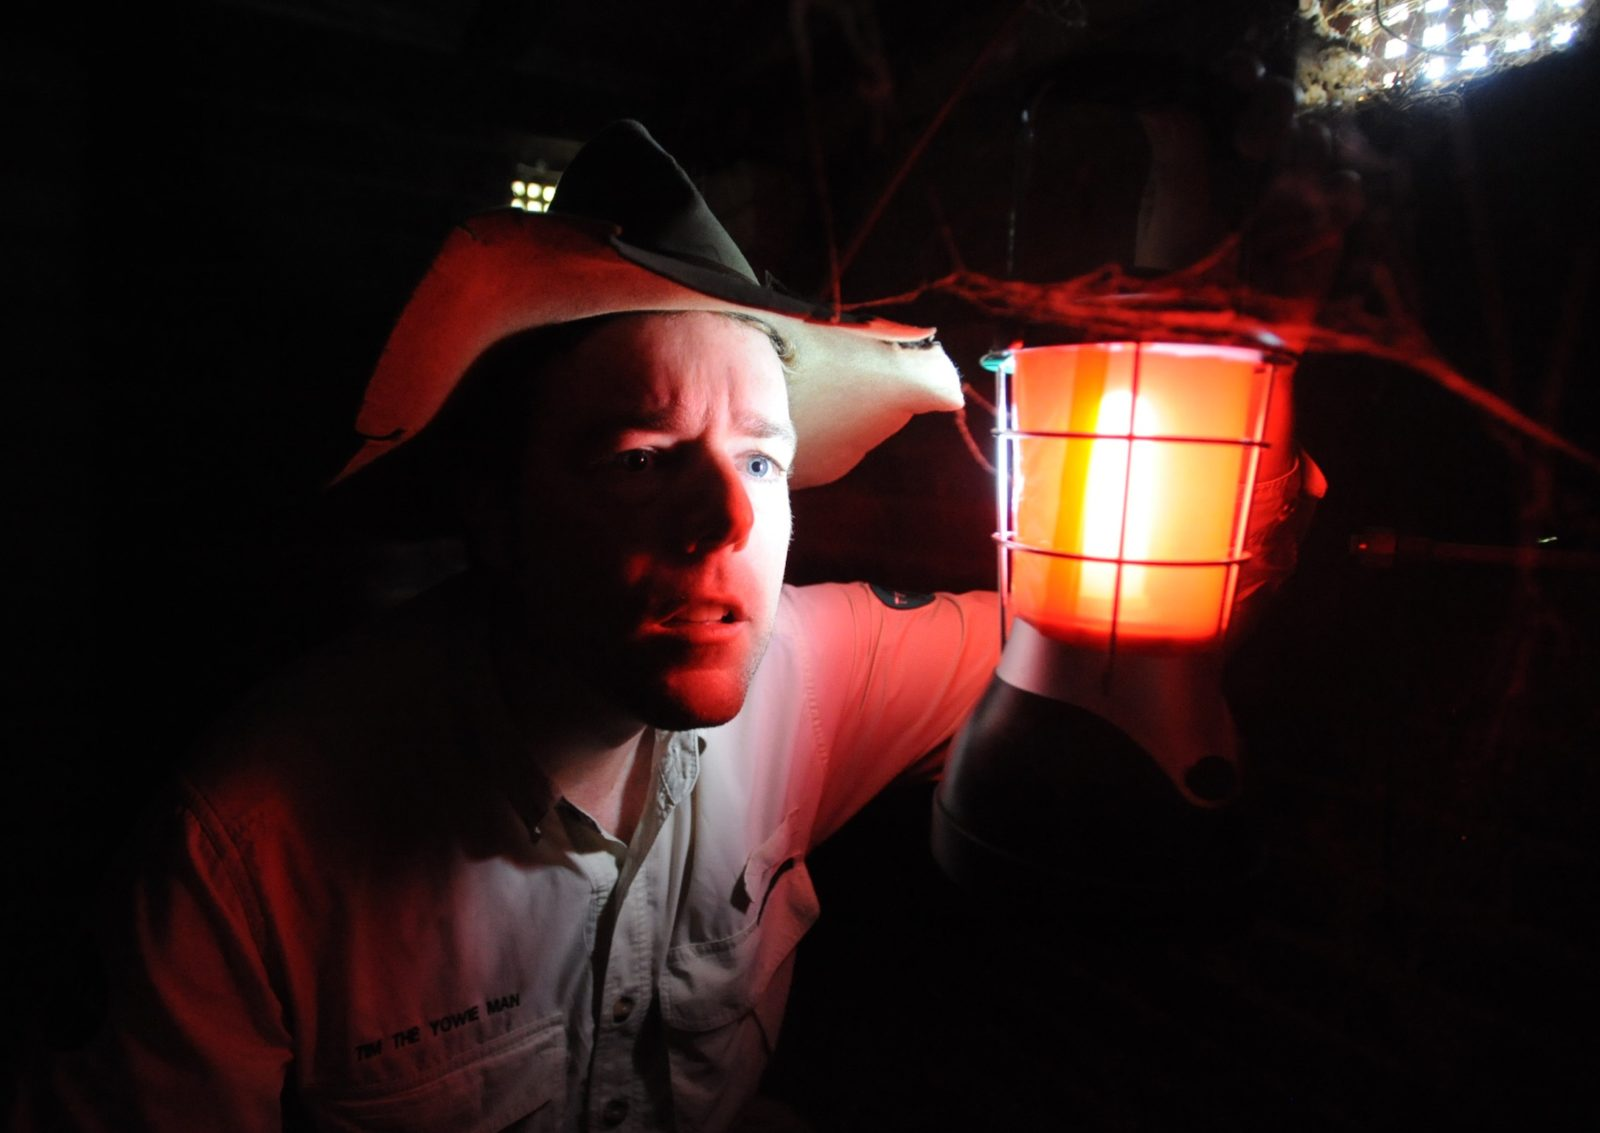 Tim the Yowie Man explores Canberra by torchlight